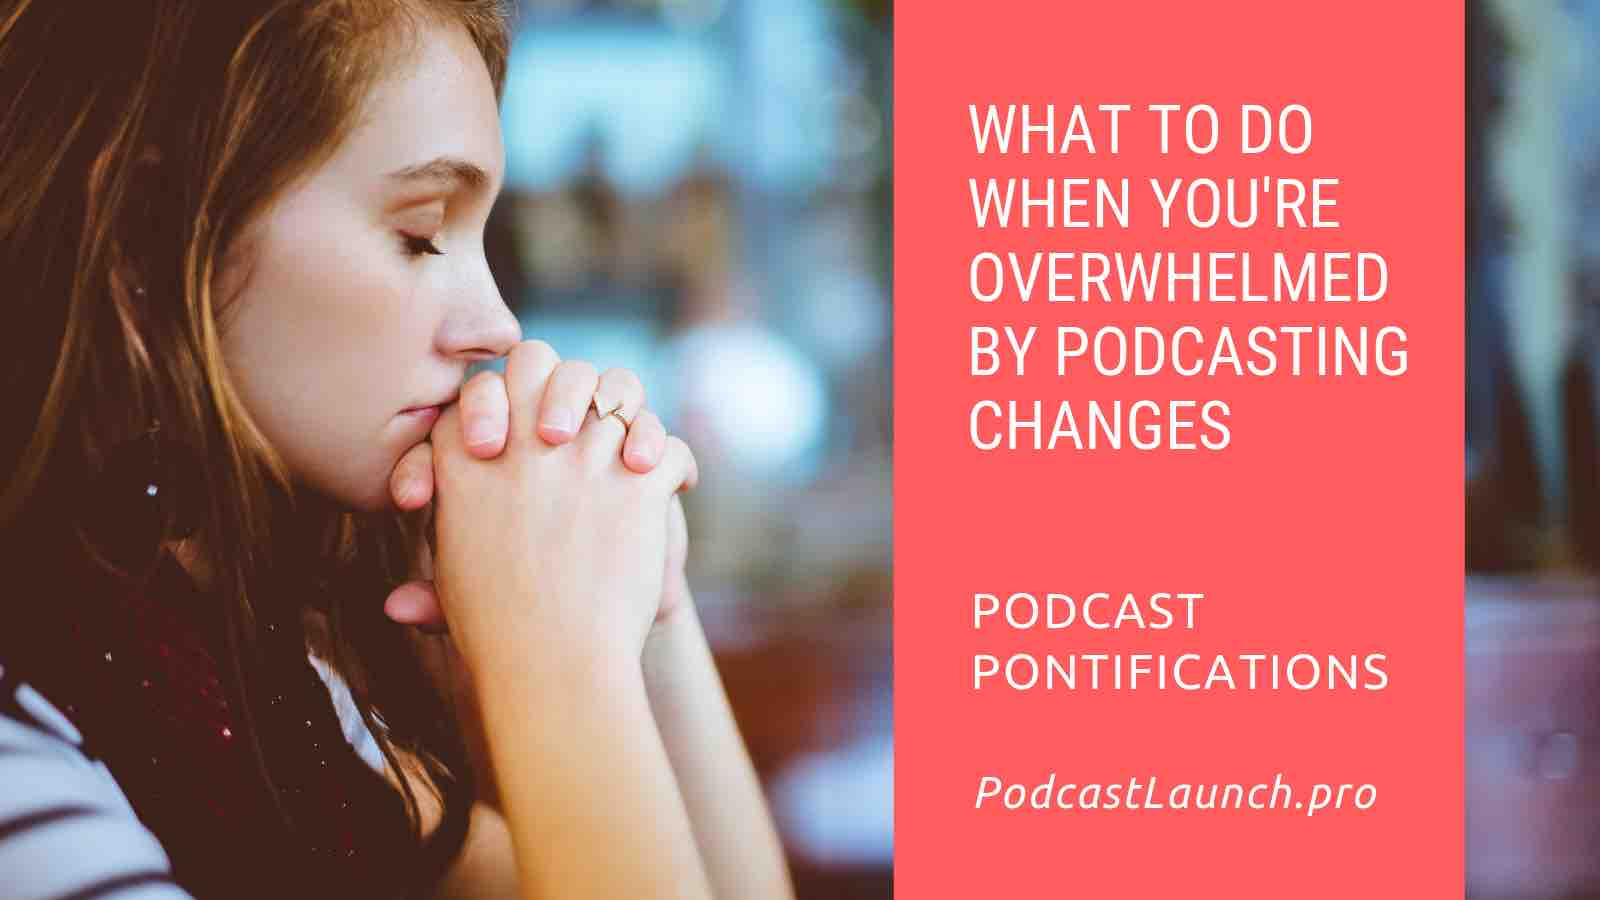 What To Do When You're Overwhelmed By Podcasting Changes